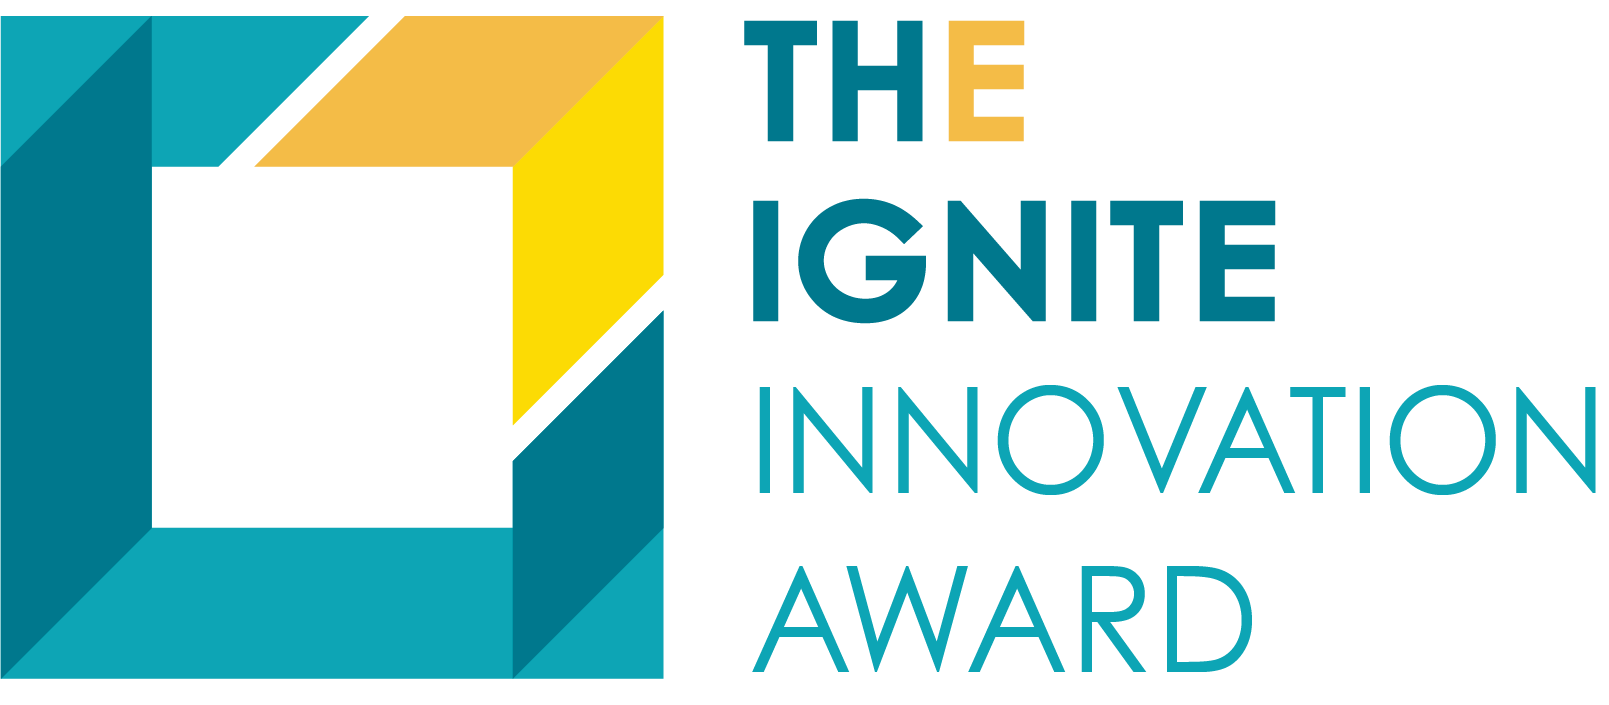 Ignite Innovation Award - Honors excellence and practical application of an innovative new product, service line or project development, human-centered design or transformation process through a pilot or prototype program or a marketed product designed to advance health, education or economic empowerment in the United States.